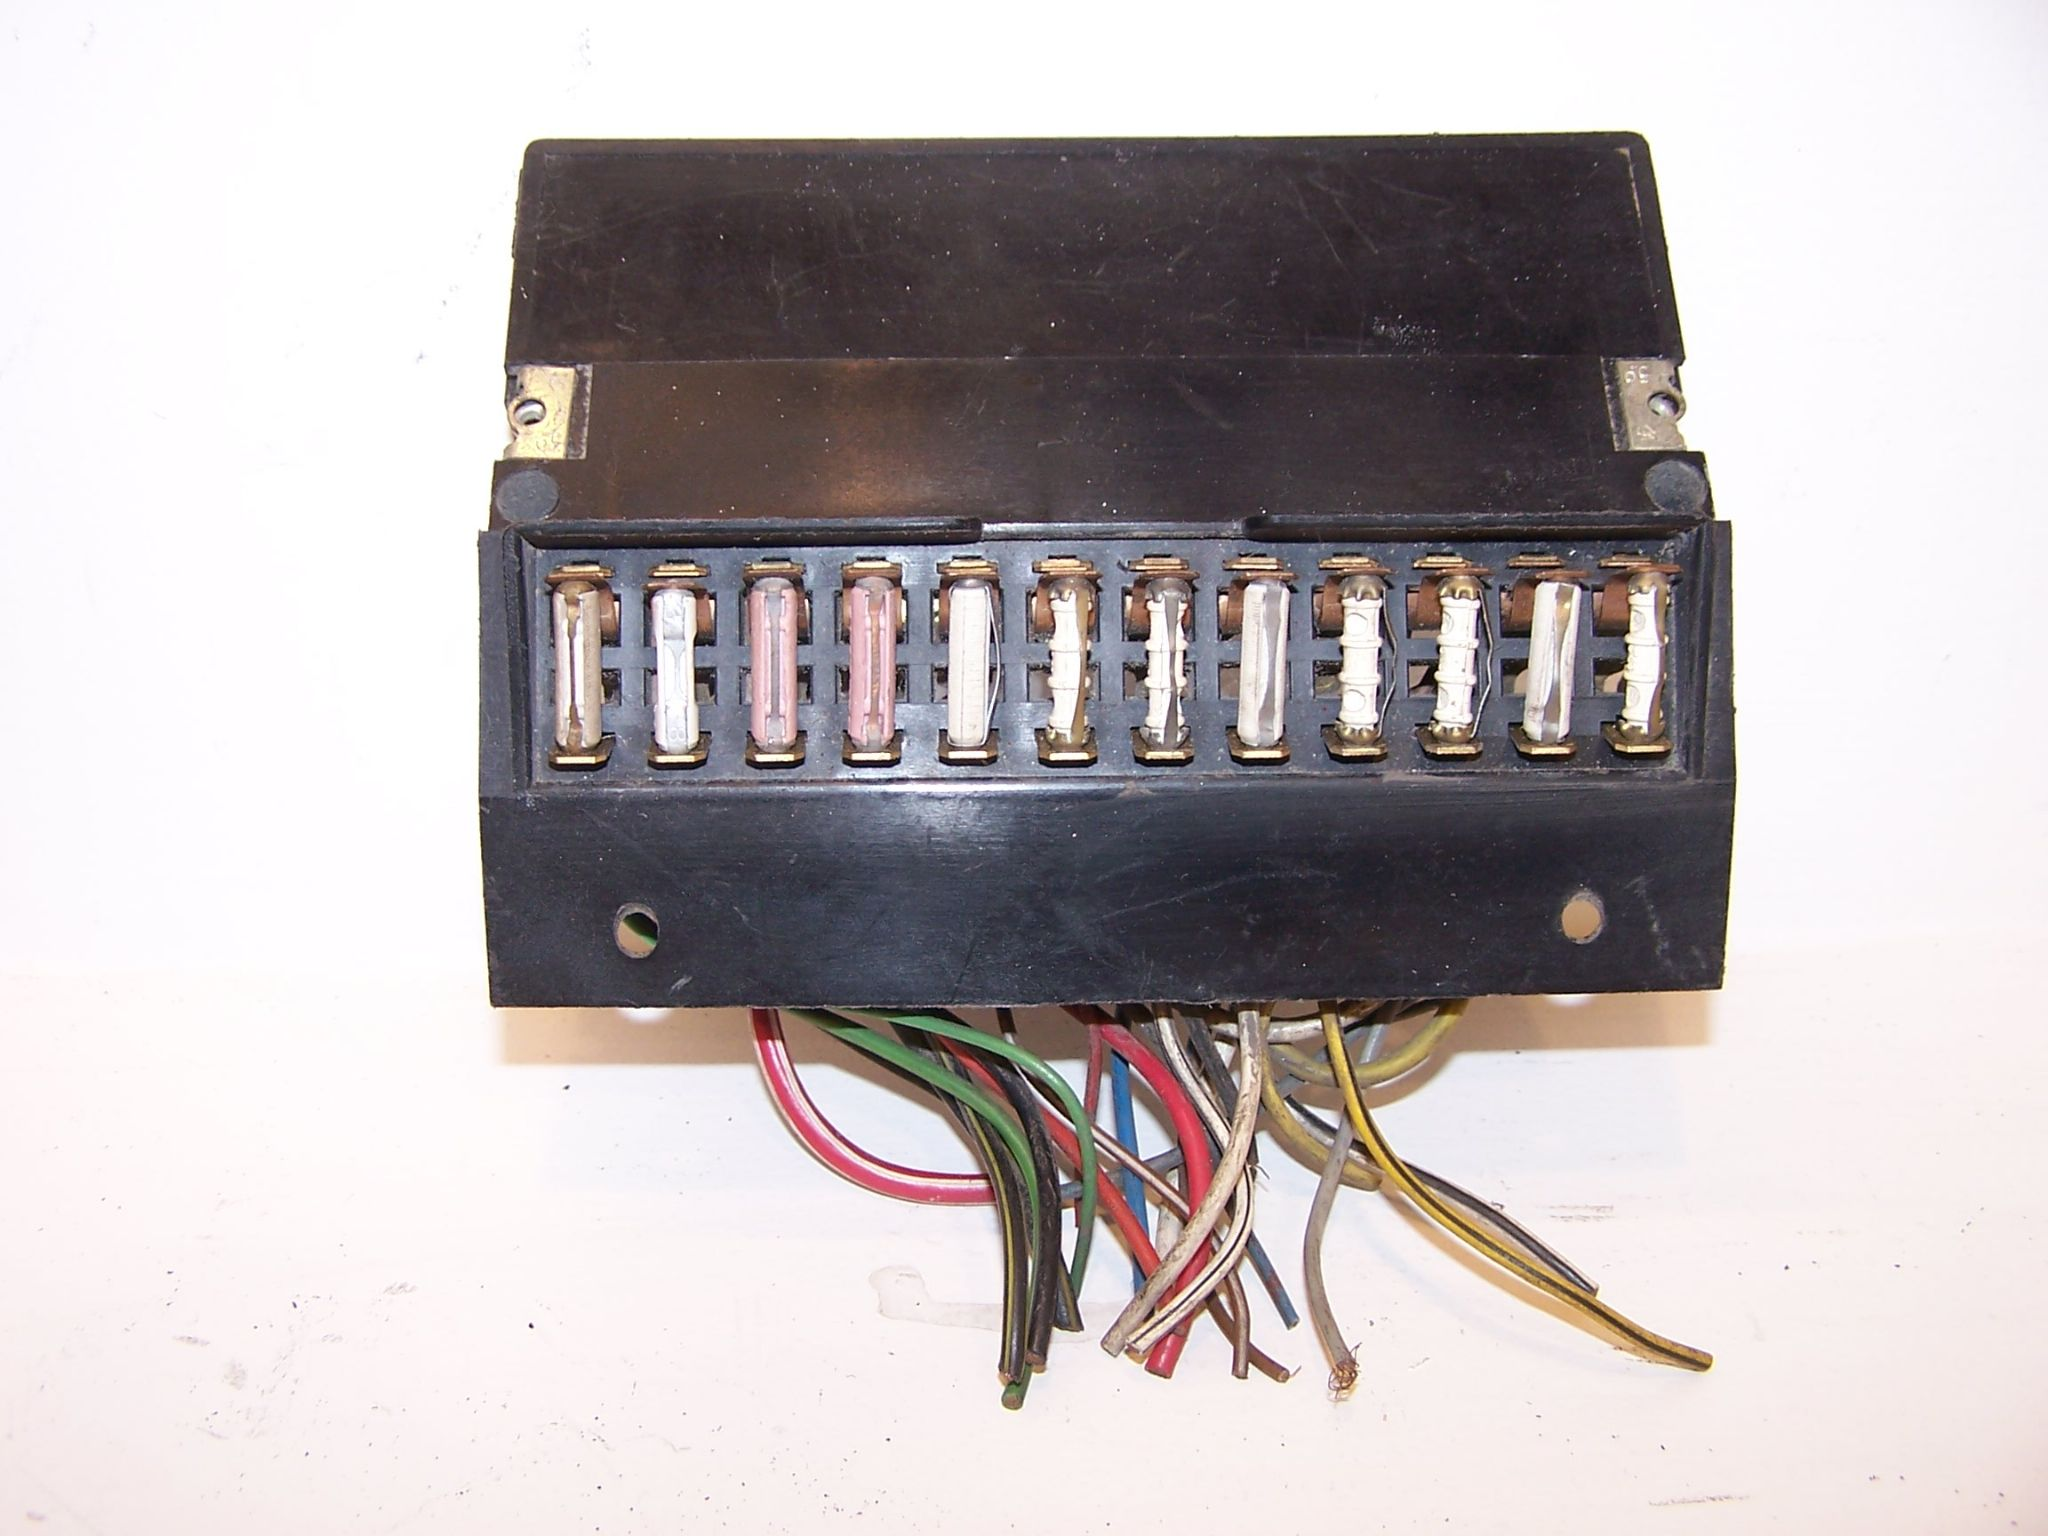 fuse box vw beetle 1303 & type 2 1974 1979 99 beetle relay panel layout fuse box in vw beetle #17